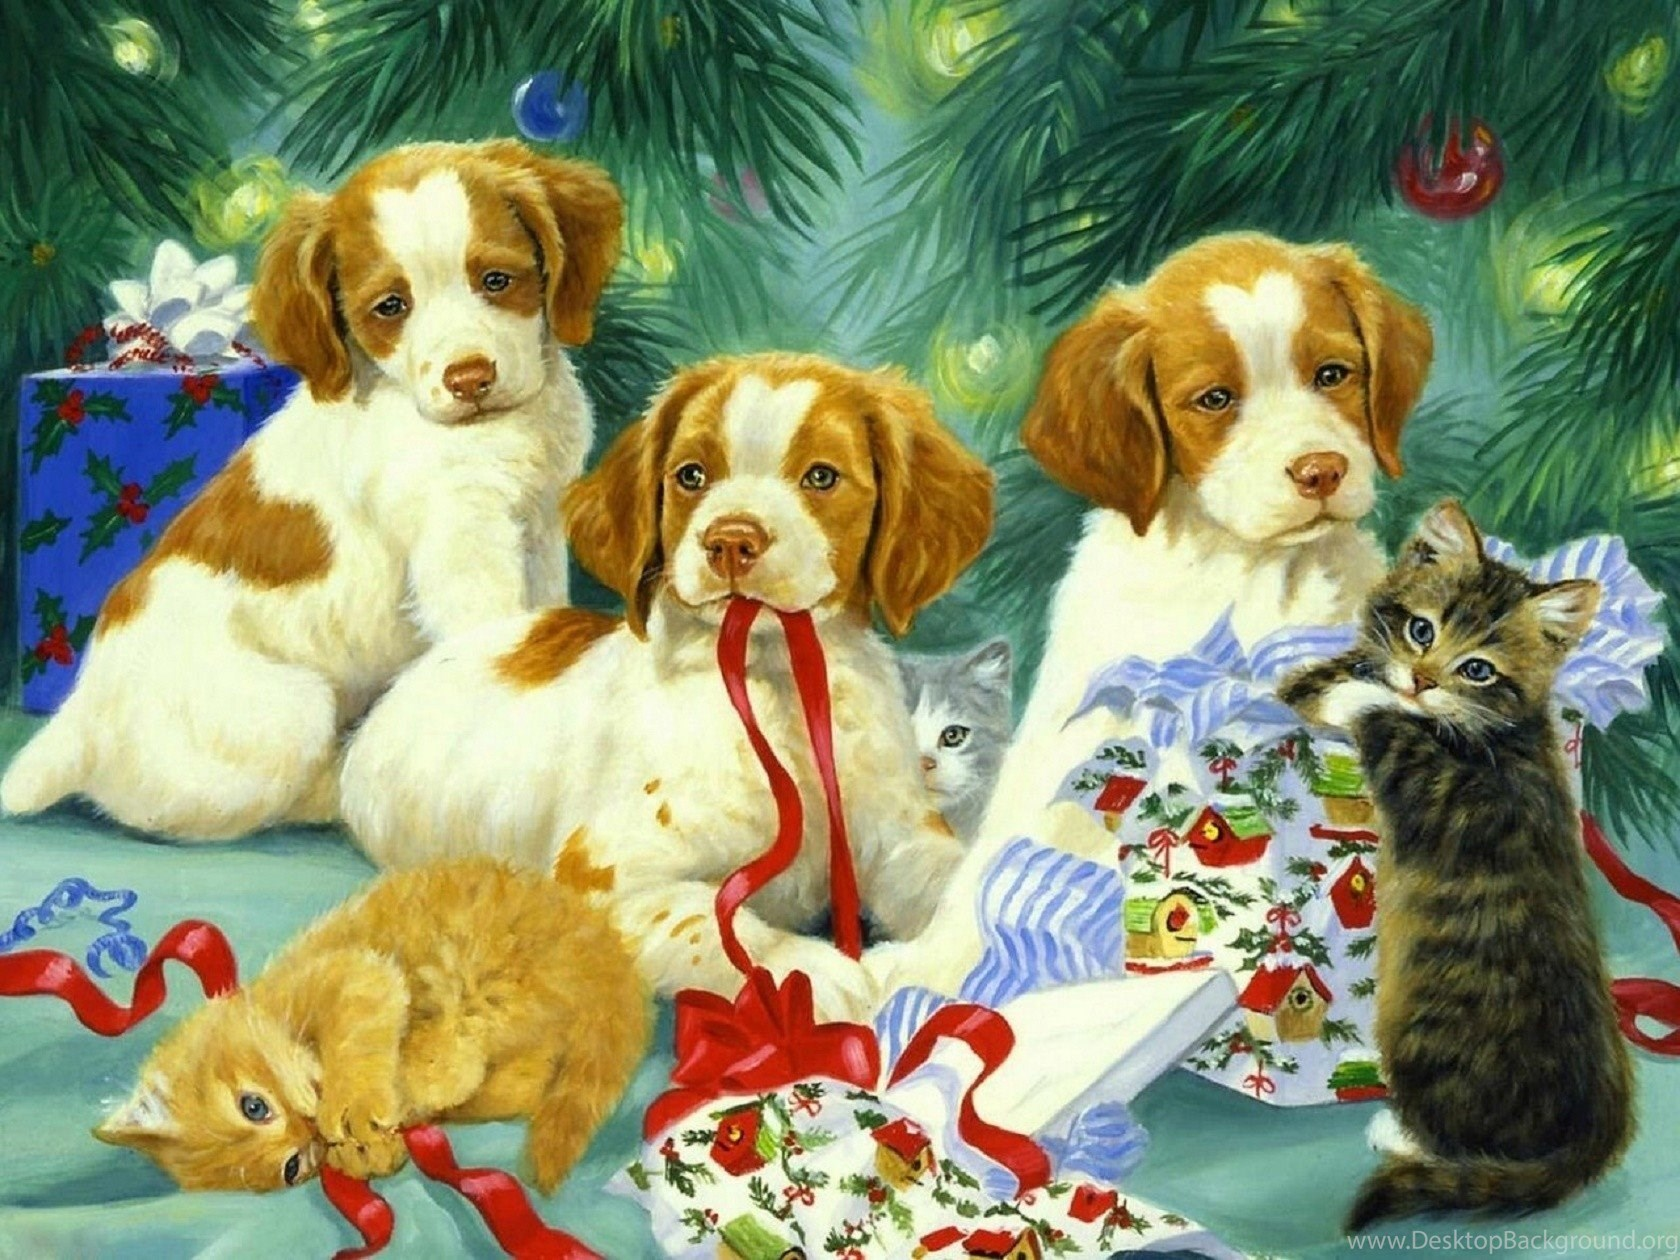 wallpapers of puppies and kittens wallpapers